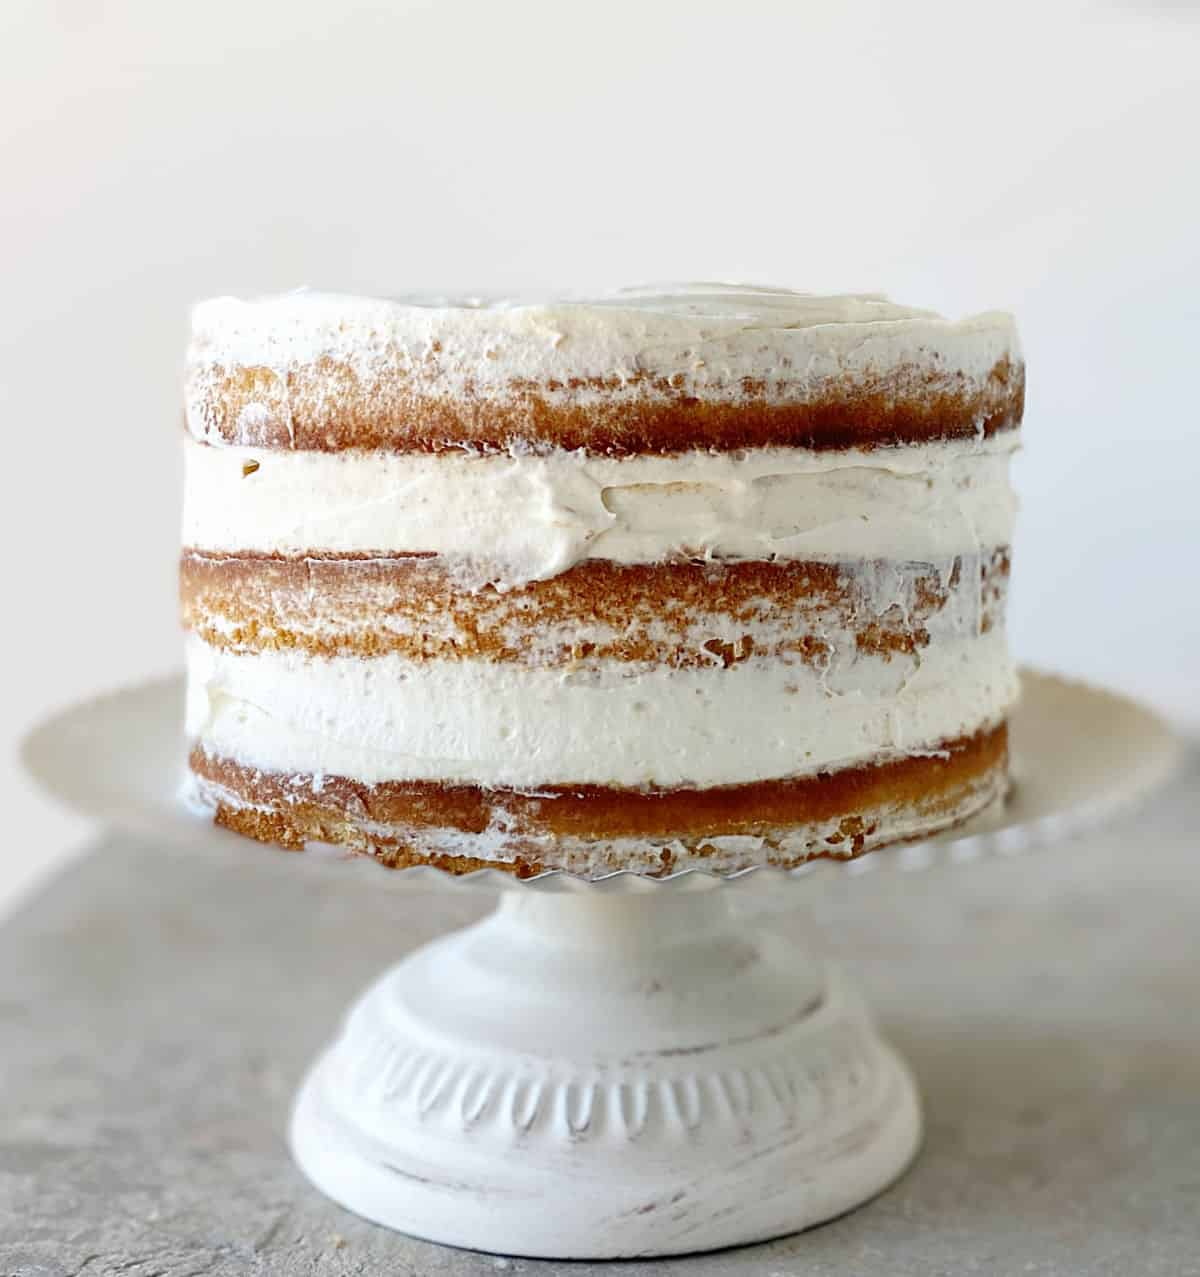 Frosted naked layer cake on white cake stand on grey surface